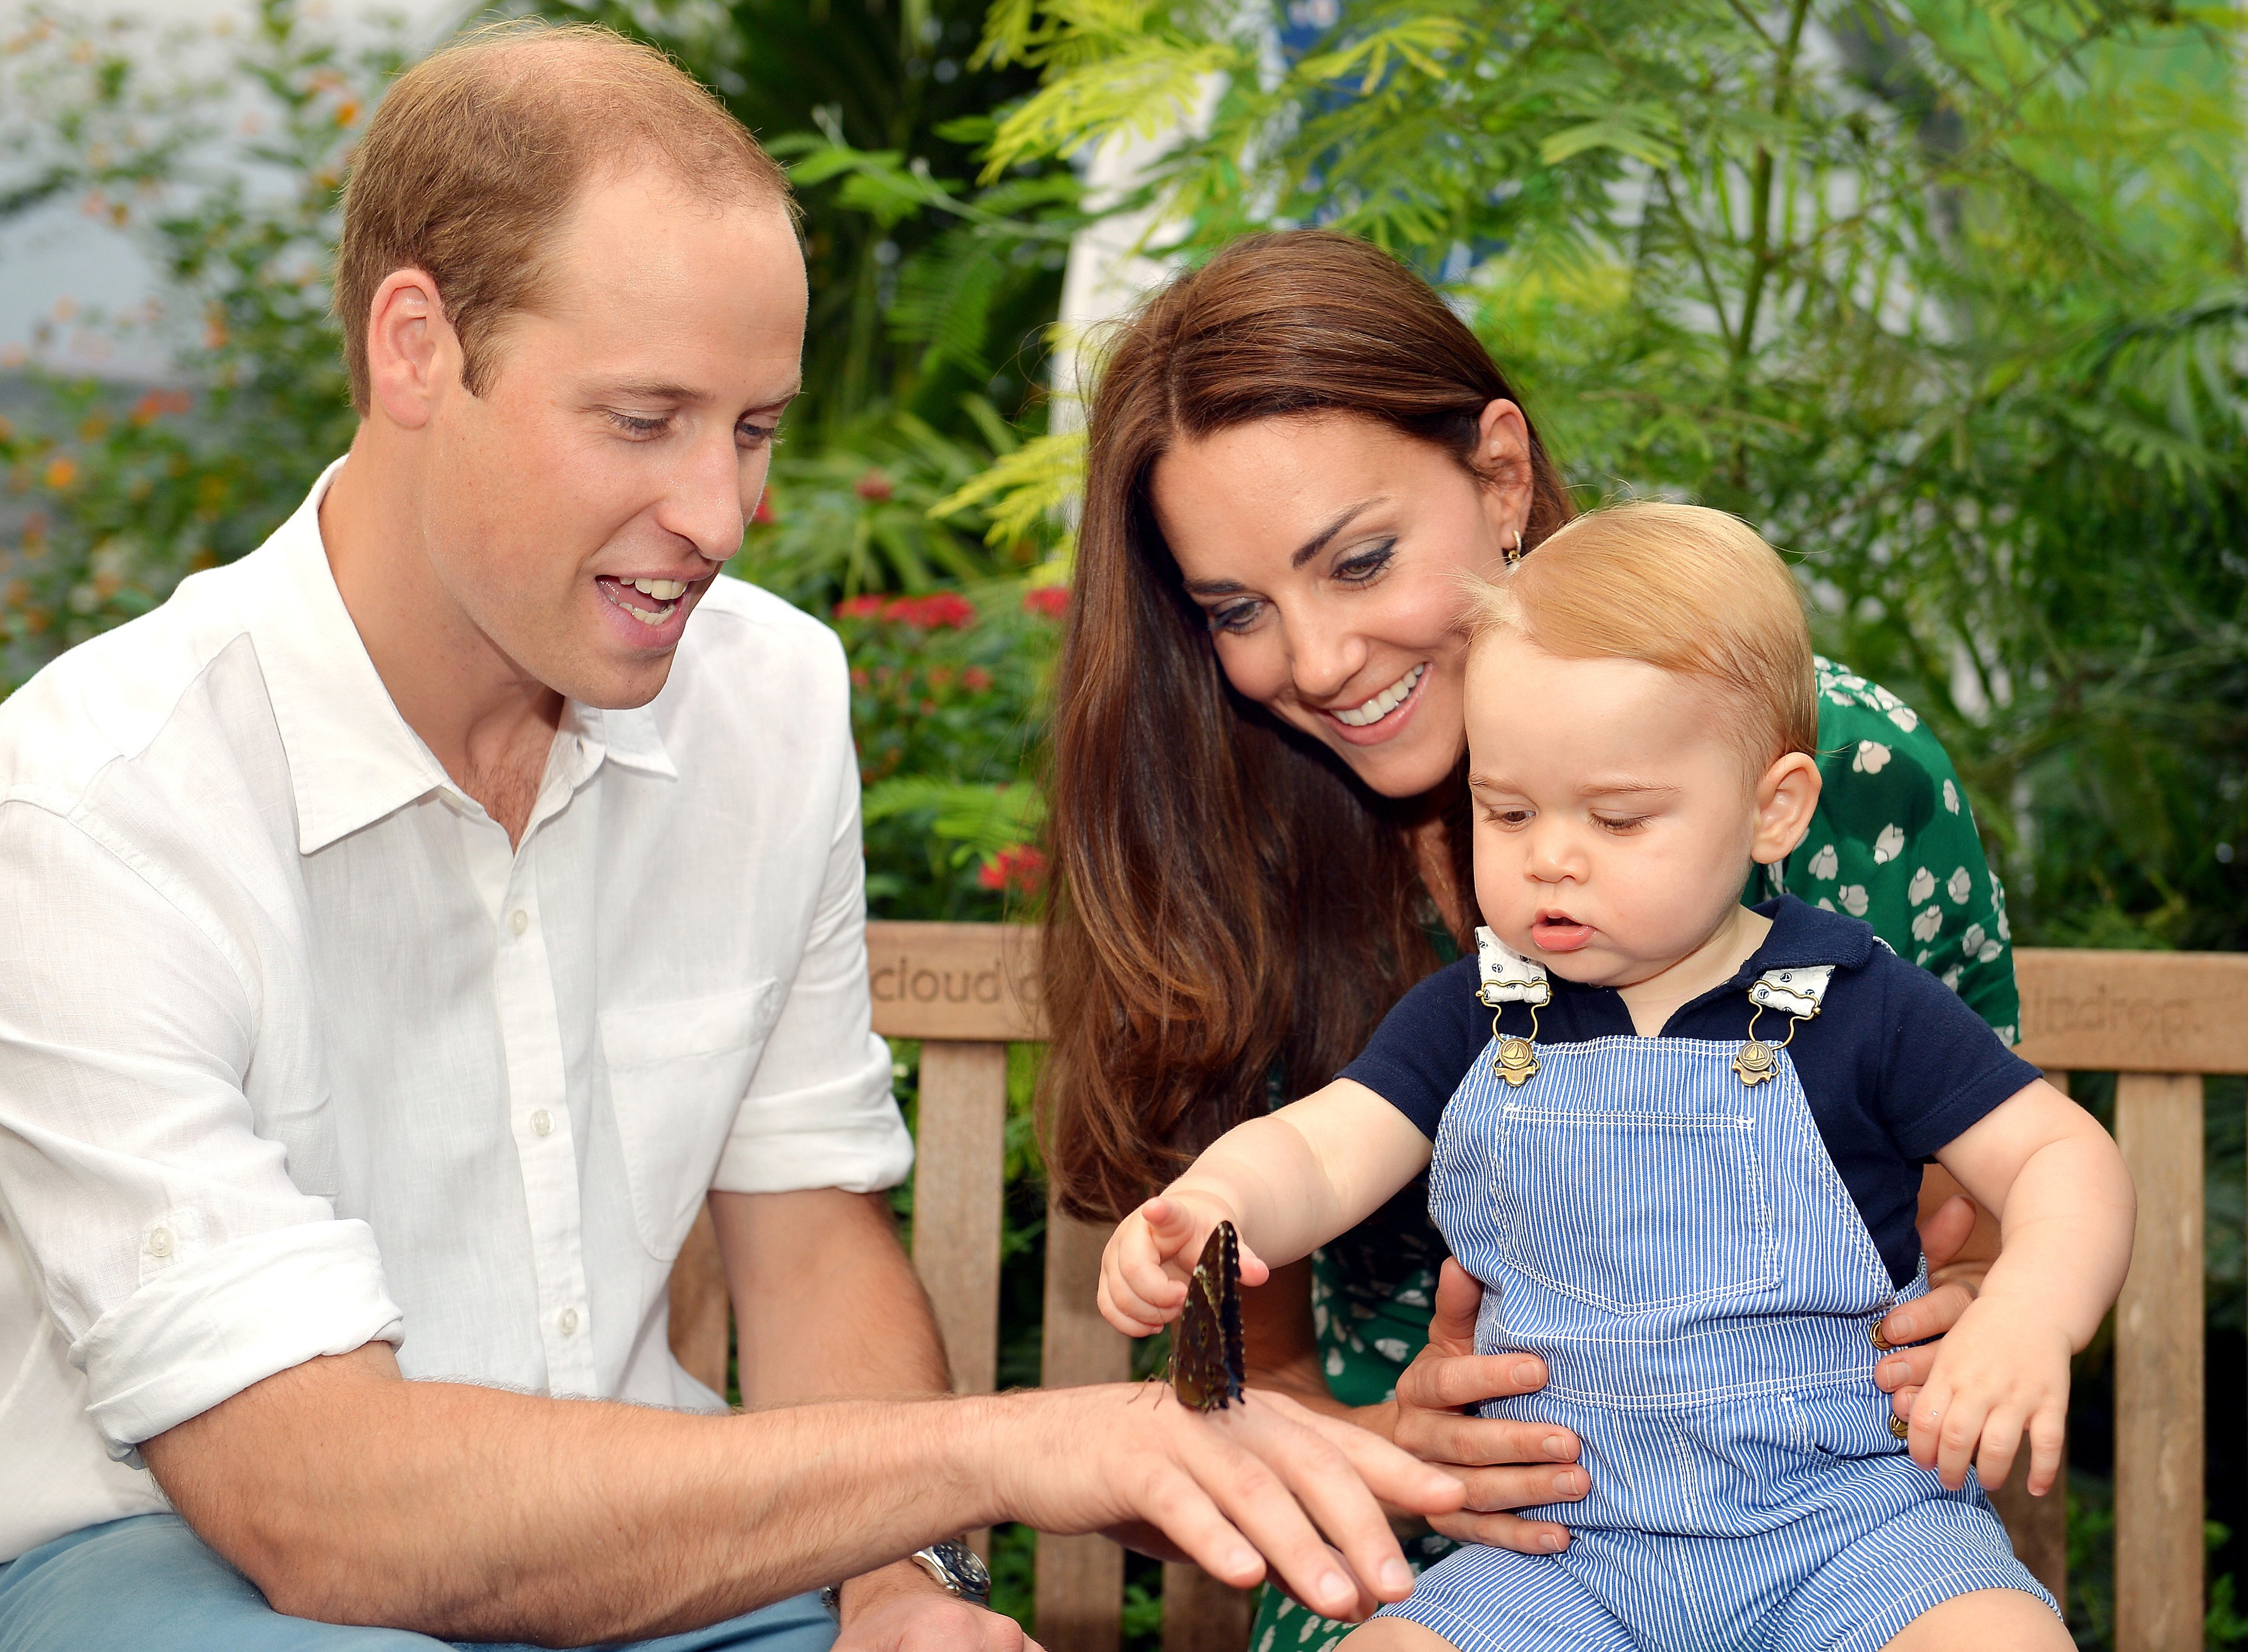 Catherine, Duchess of Cambridge holds Prince George as he points to a butterfly on Prince William, Duke of Cambridge's hand as they visit the Sensational Butterflies exhibition at the Natural History Museum on July 2, 2014 in London, England.